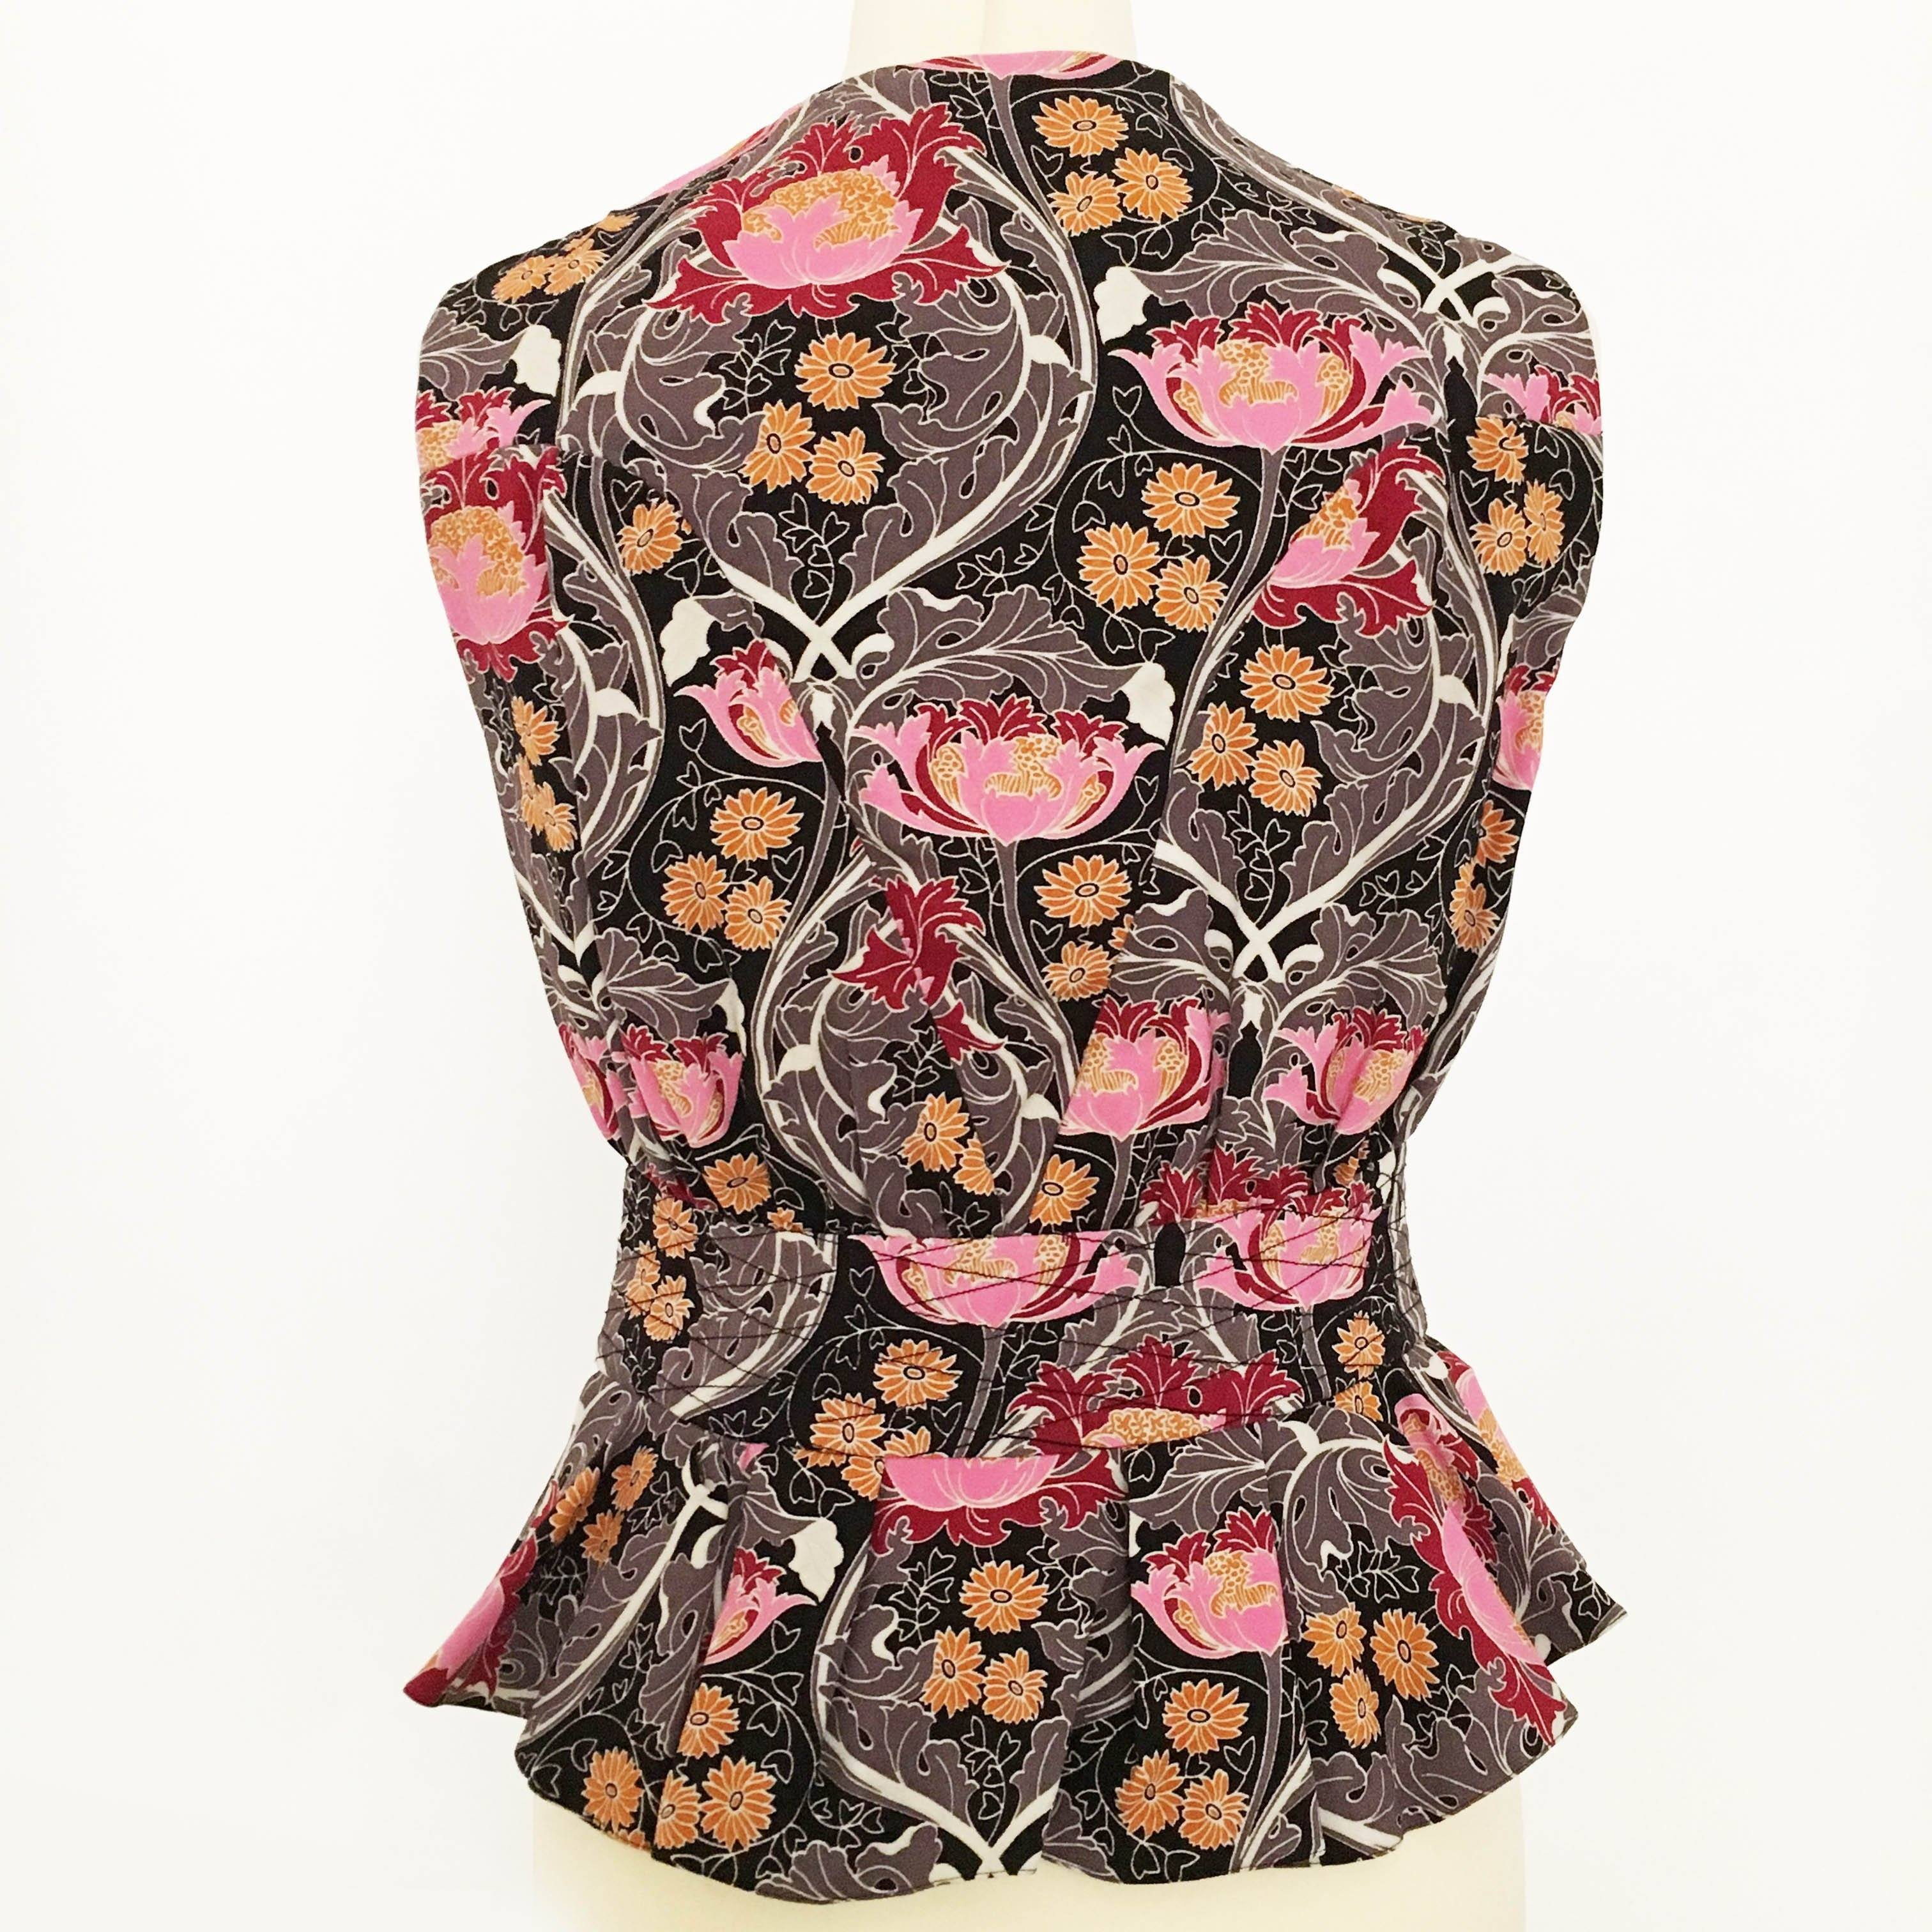 Louis Vuitton Printed Peplum Top